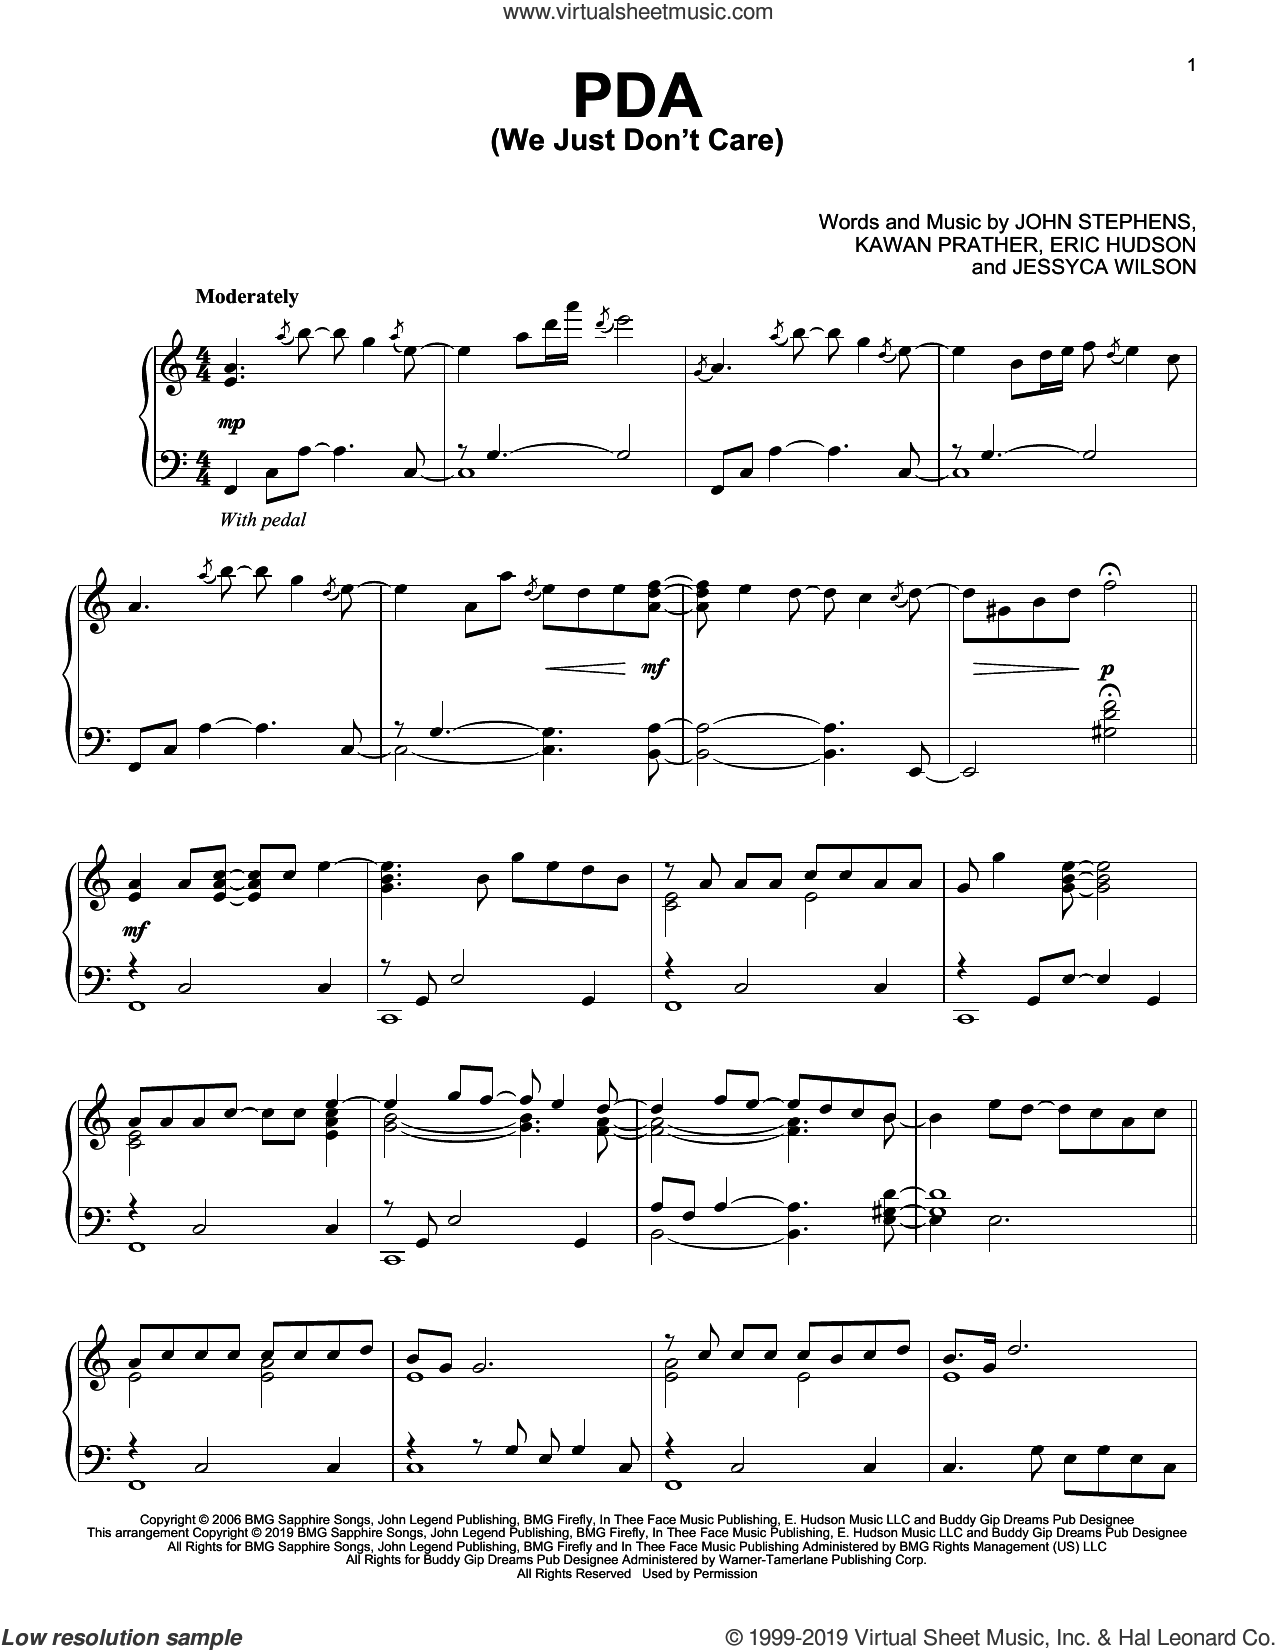 PDA (We Just Don't Care) sheet music for piano solo by John Legend, Eric Hudson, Jessyca Wilson, John Stephens and Kawan Prather, intermediate skill level